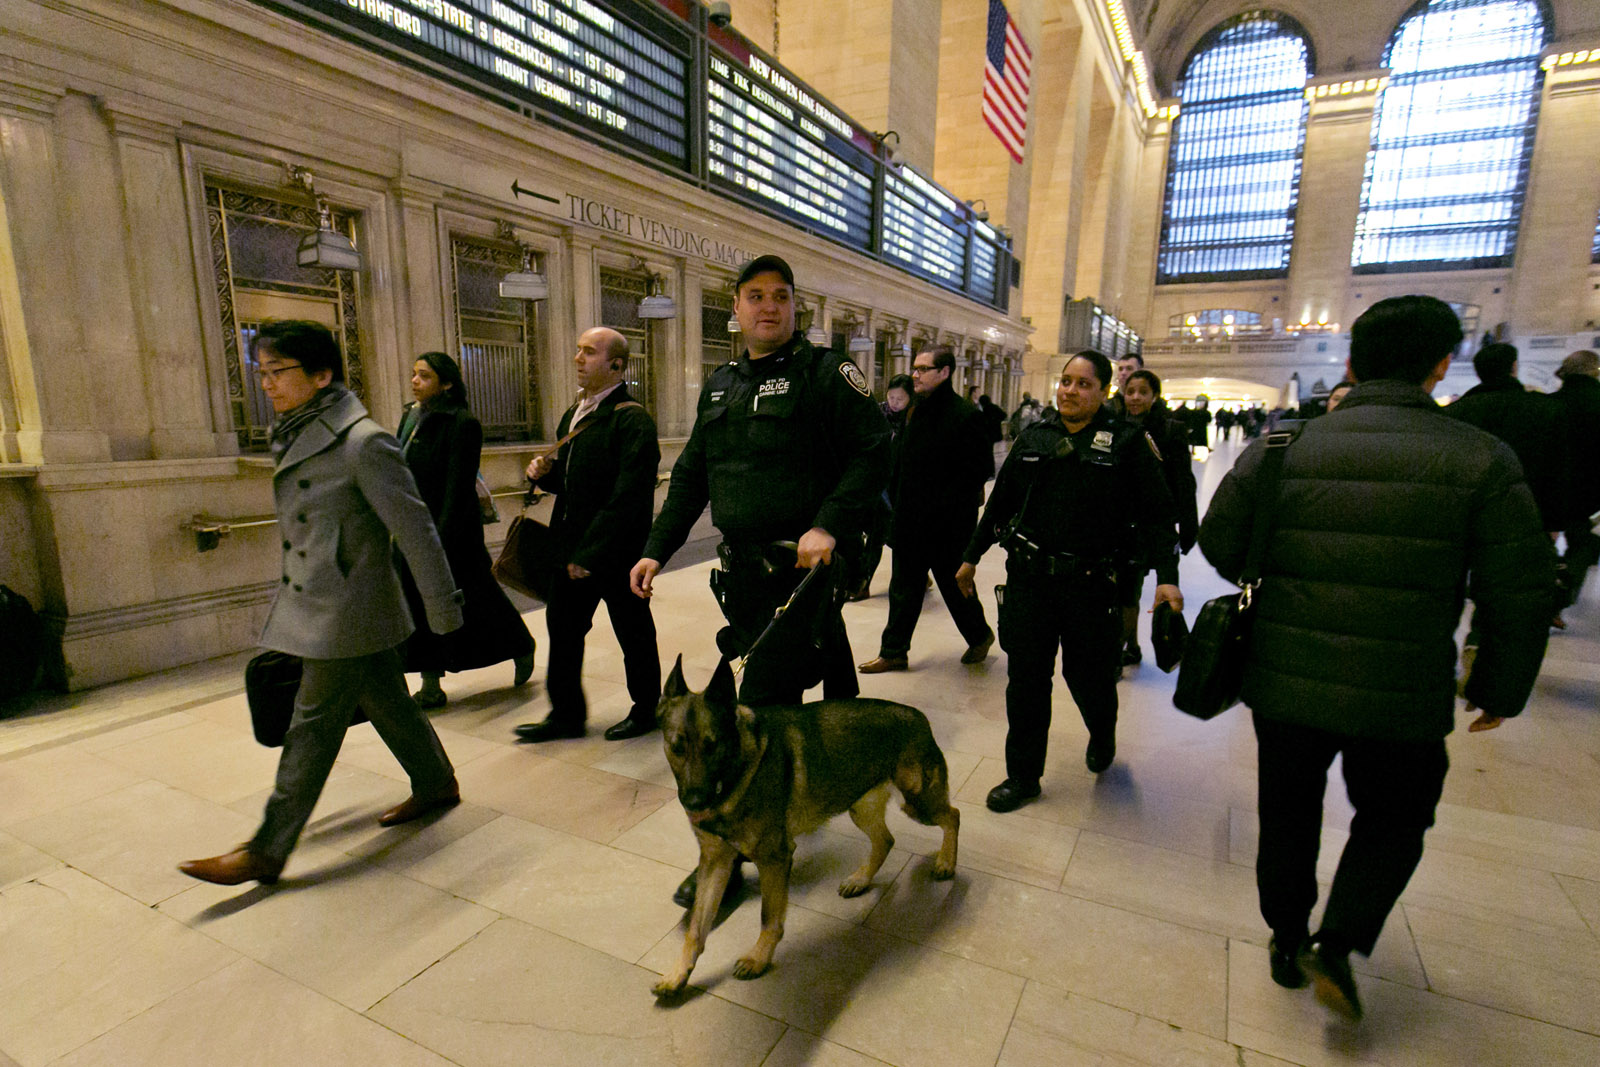 Metro-North Railroad police officers patrol Grand Central Terminal, in New York,  Tuesday, March 22, 2016. Authorities are increasing security throughout New York City following explosions at the airport and subway system in the Belgian capital of Brussels.  (AP Photo/Richard Drew)